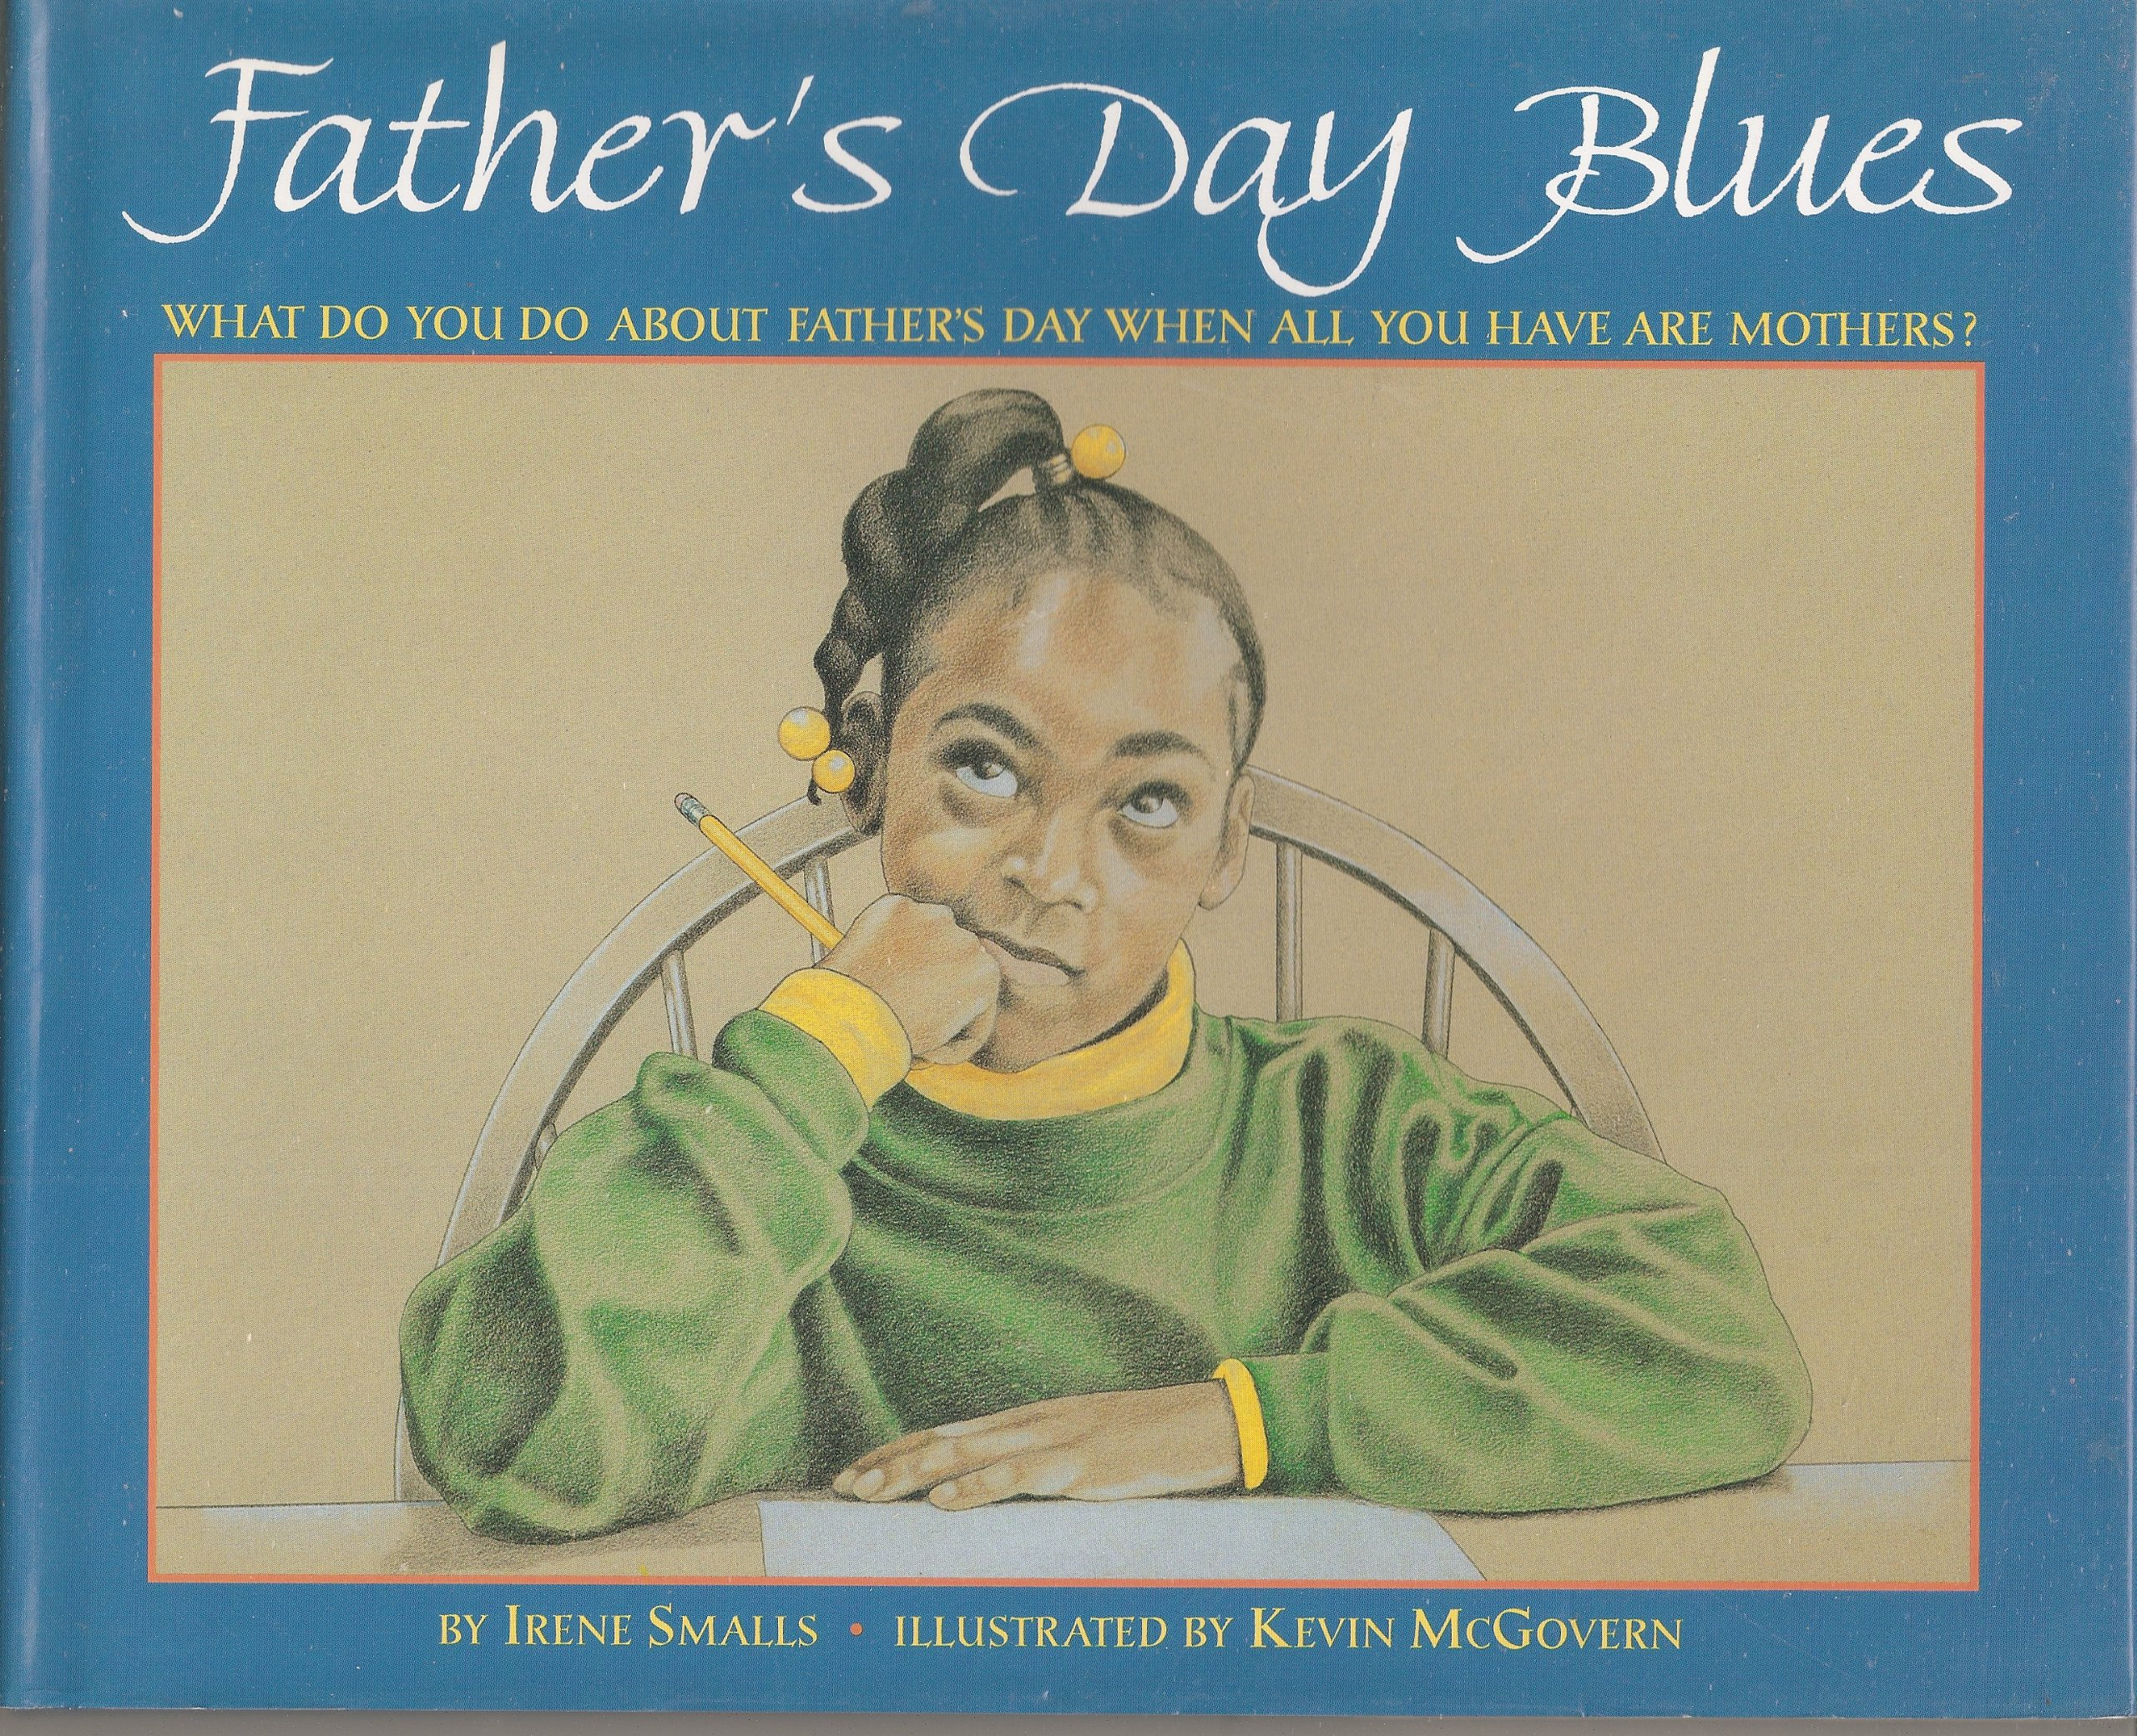 Father's Day Blues: What Do You Do About Father's Day When All You Have Are Mothers? - Irene Smalls